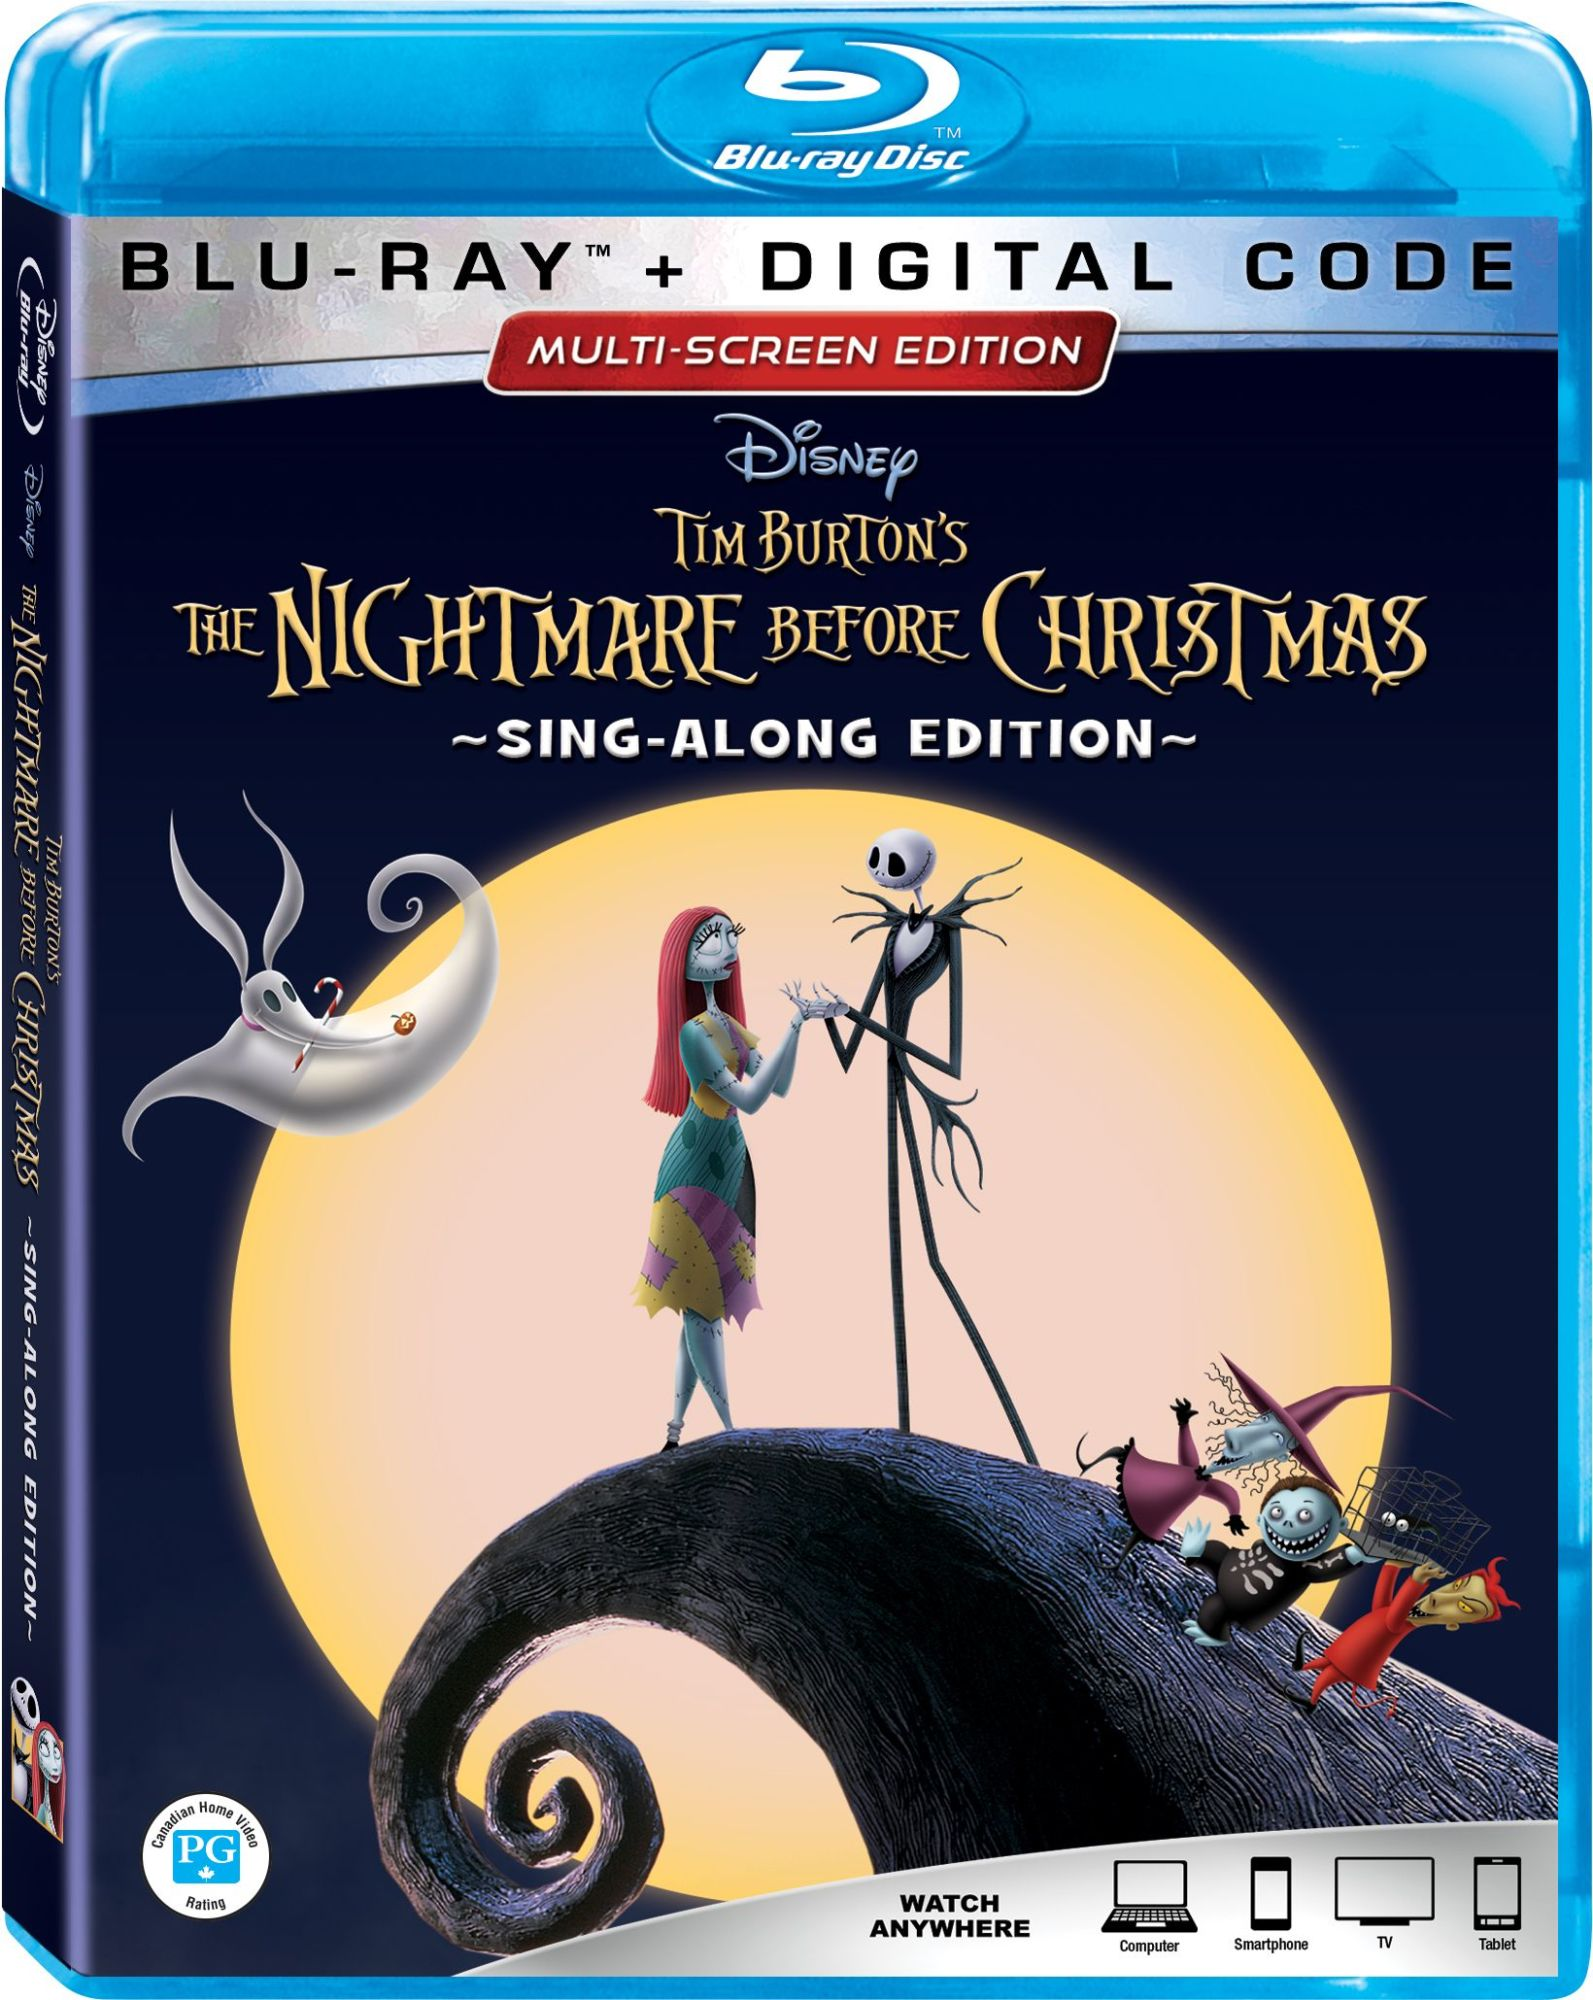 The Nightmare Before Christmas\' 25th Anniversary Blu-ray Details ...